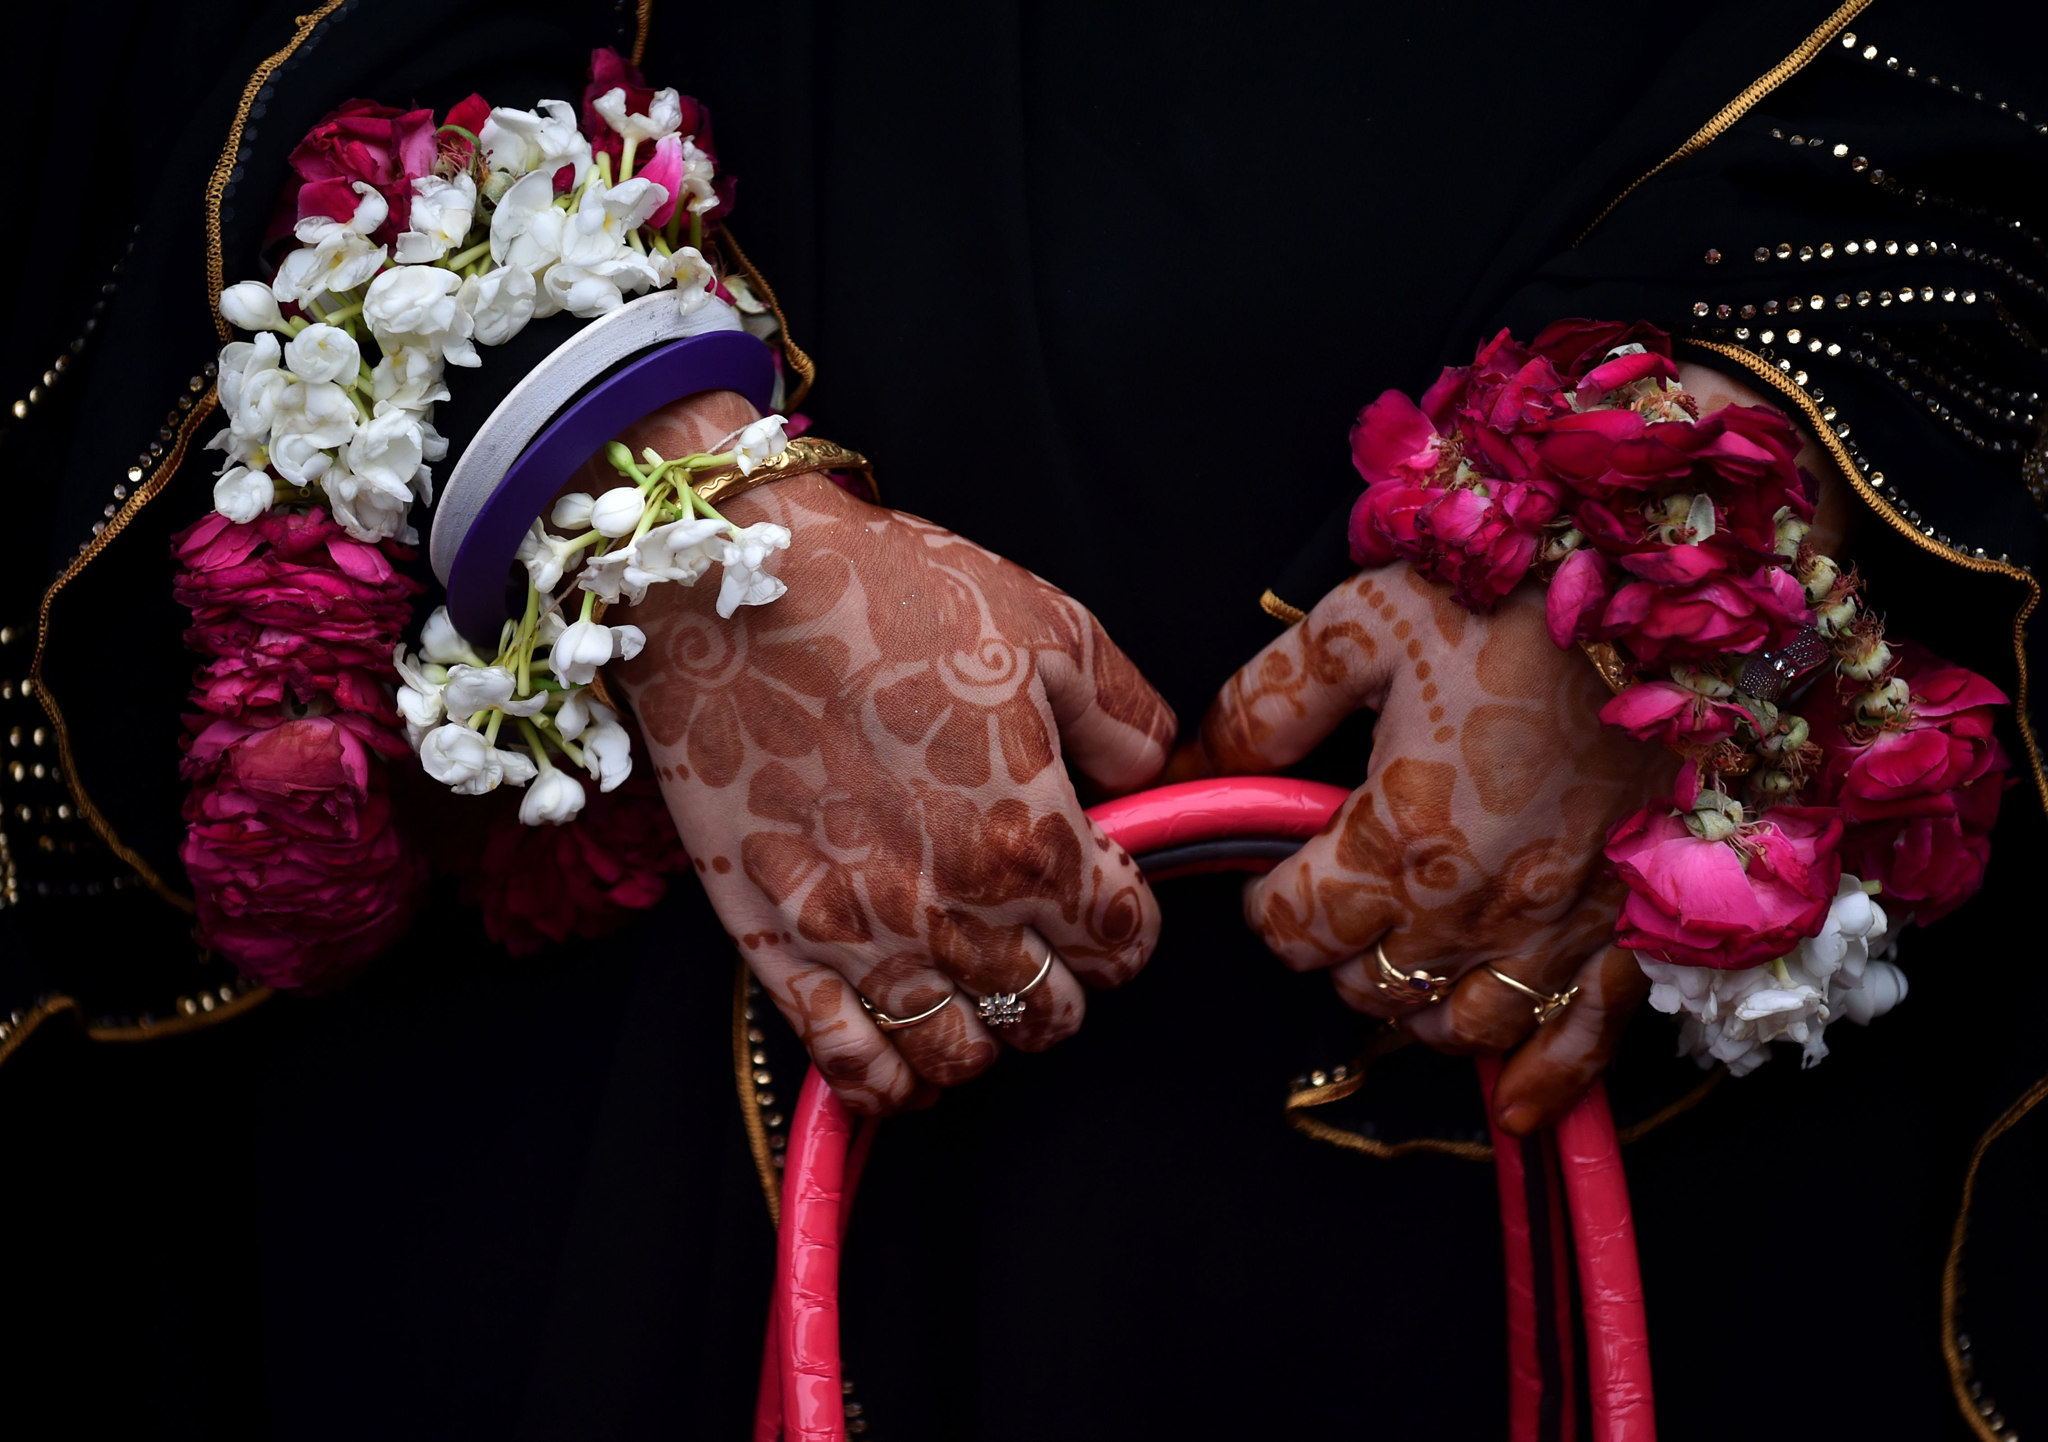 An Indian Muslim pilgrim whose hands are decorated with henna and garlands is phhotographed before leaving for the annual Hajj pilgrimage